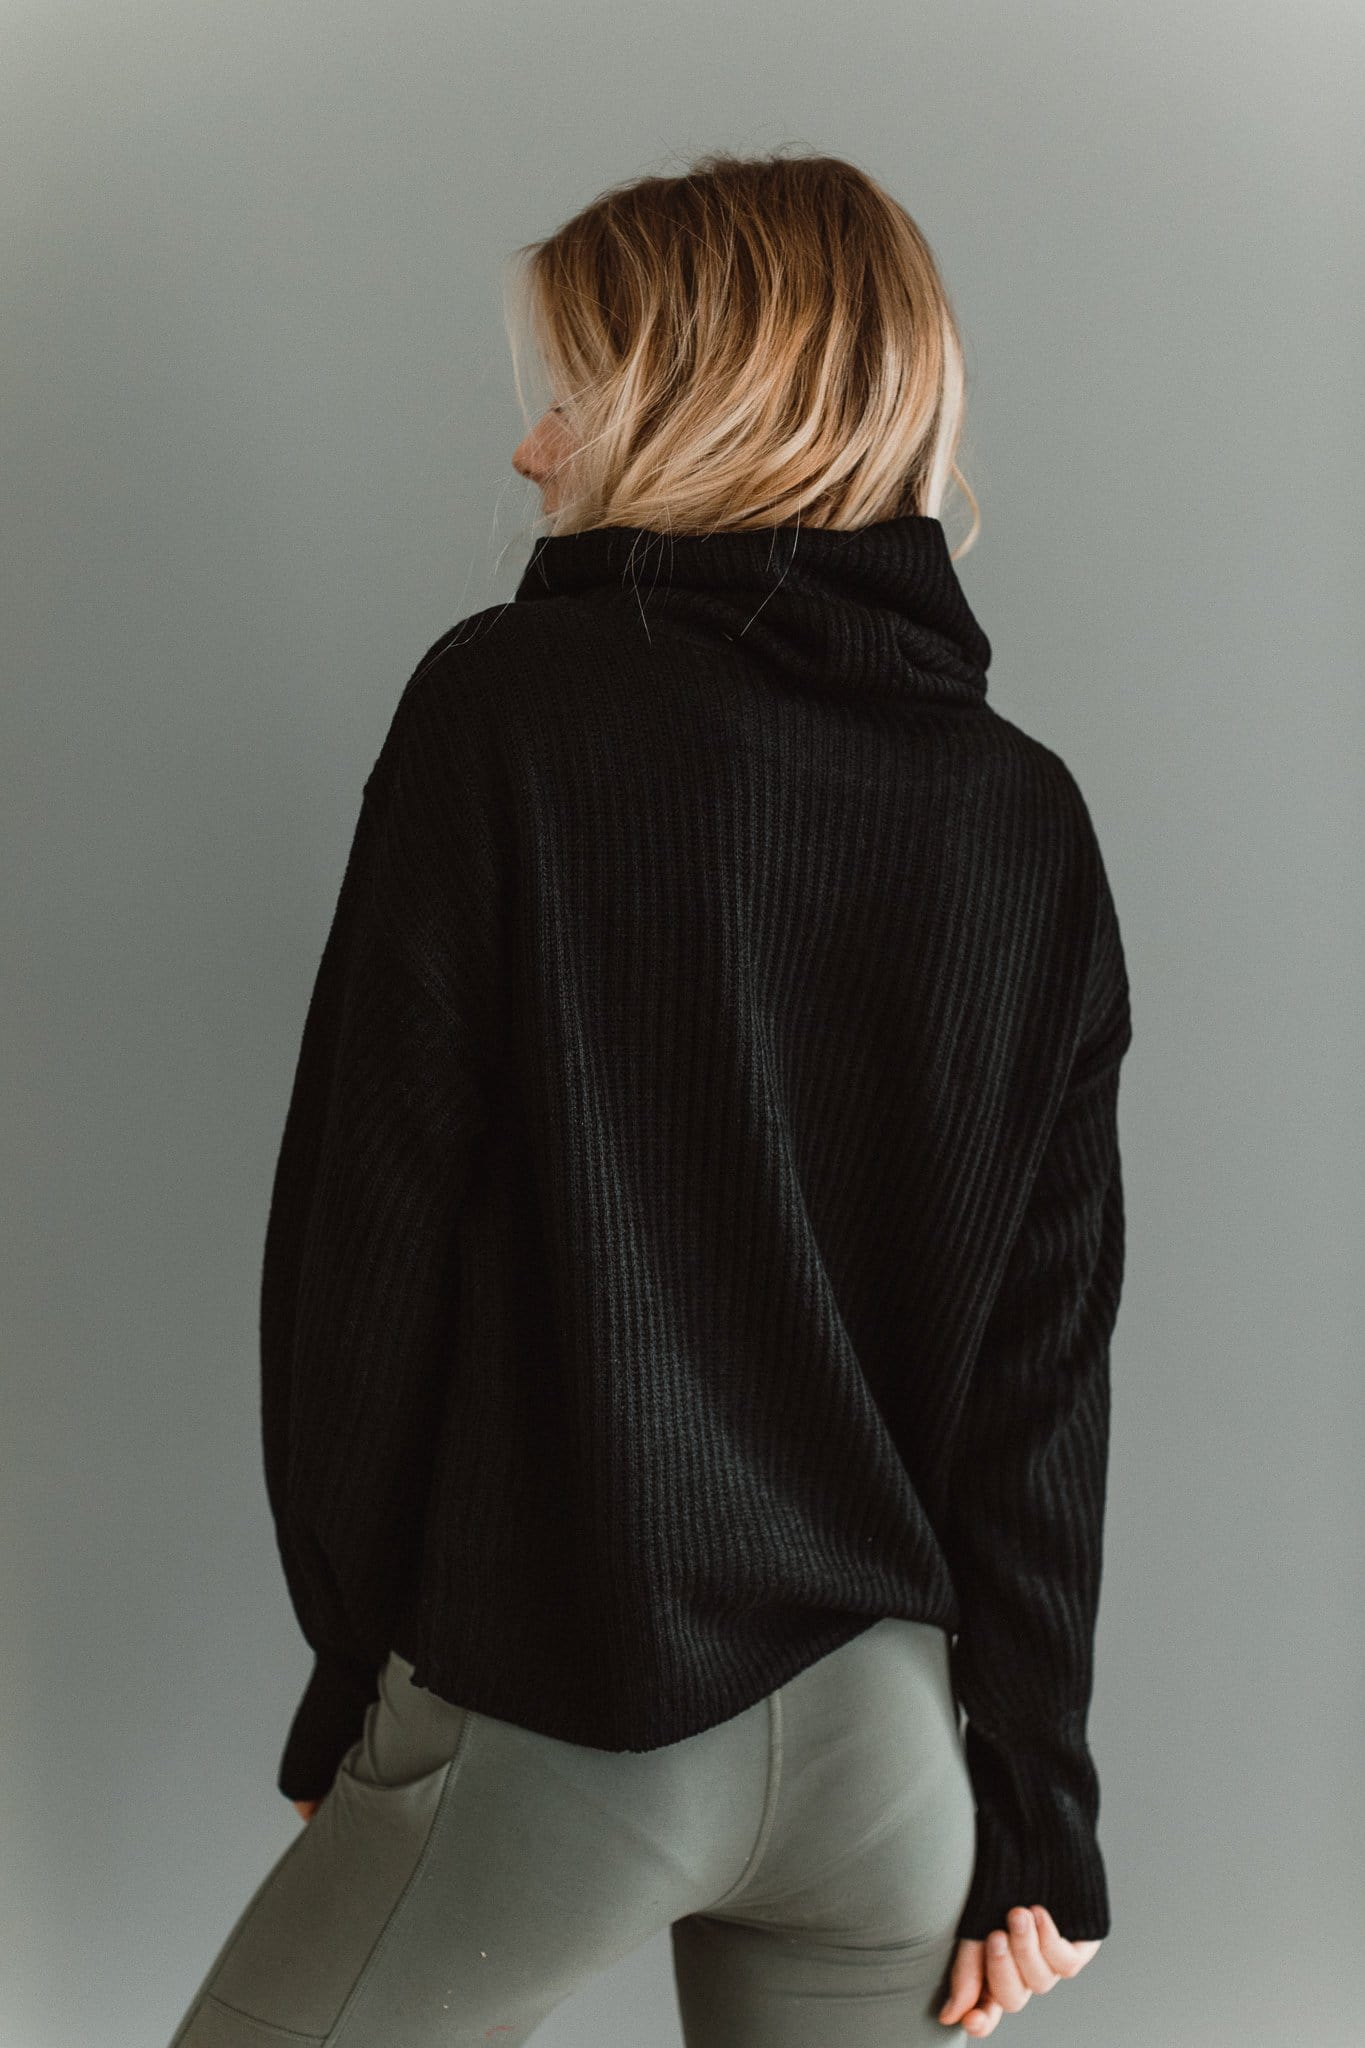 The Paige Cowl Neck Sweater in Black